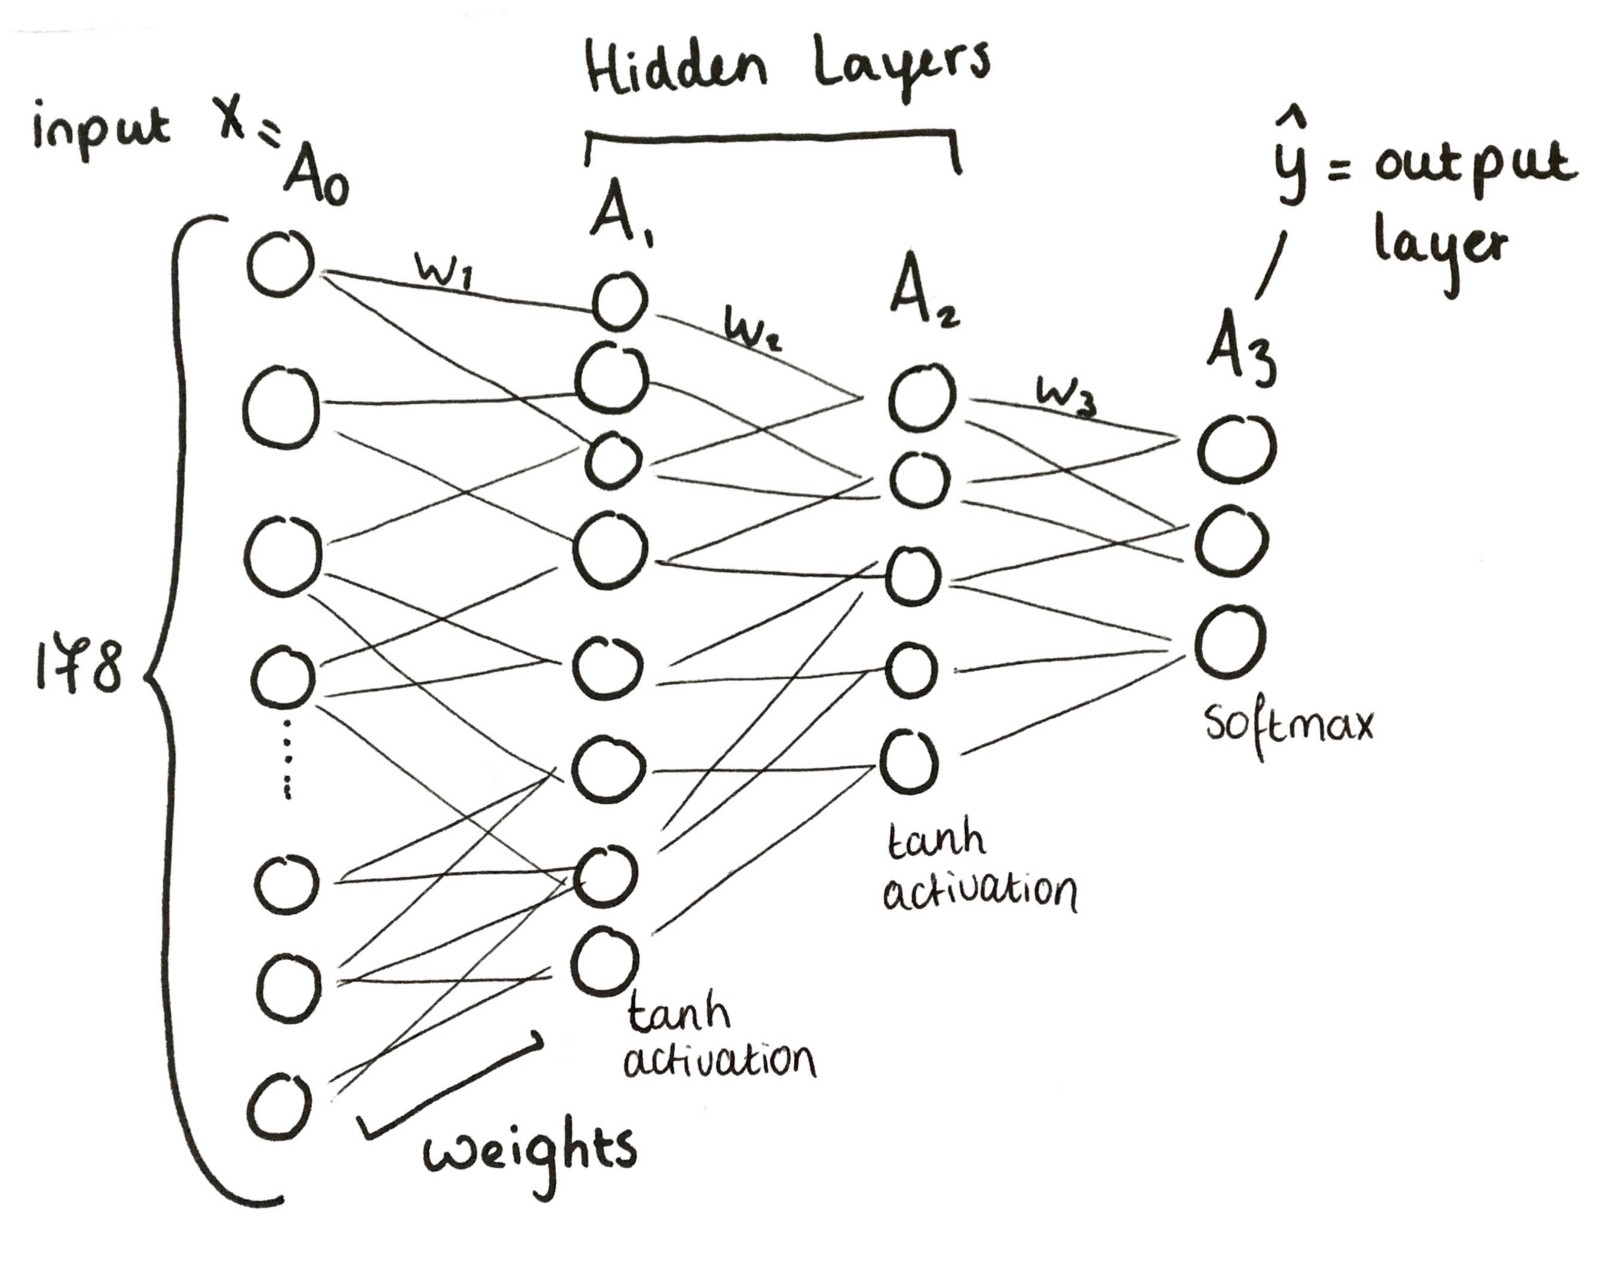 how to build a three layer neural network from scratch